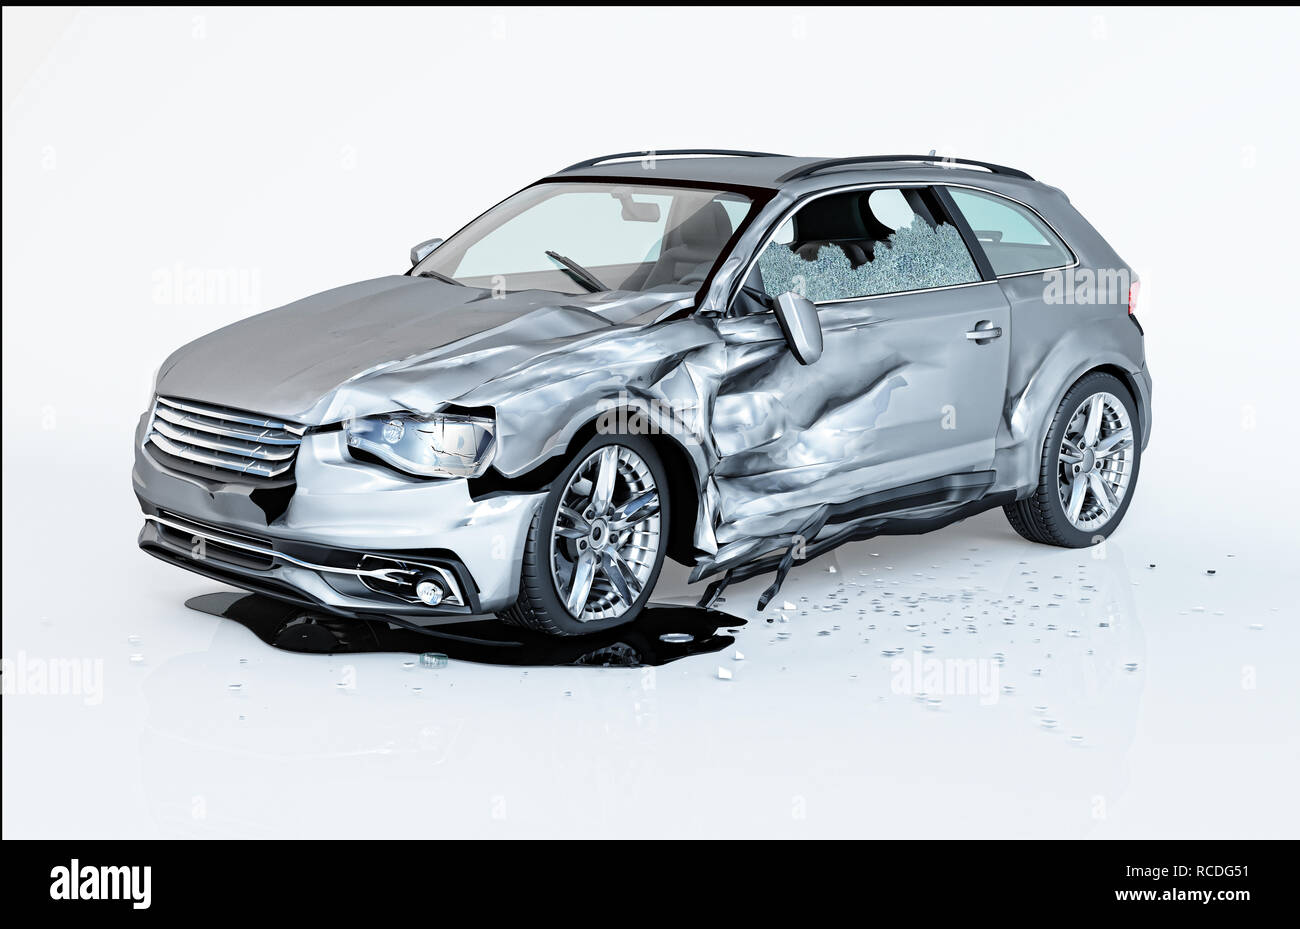 Single Car Crashed Silver Coupe Havily Damaged On A Side Isolated On White Background Perspective View Stock Photo Alamy